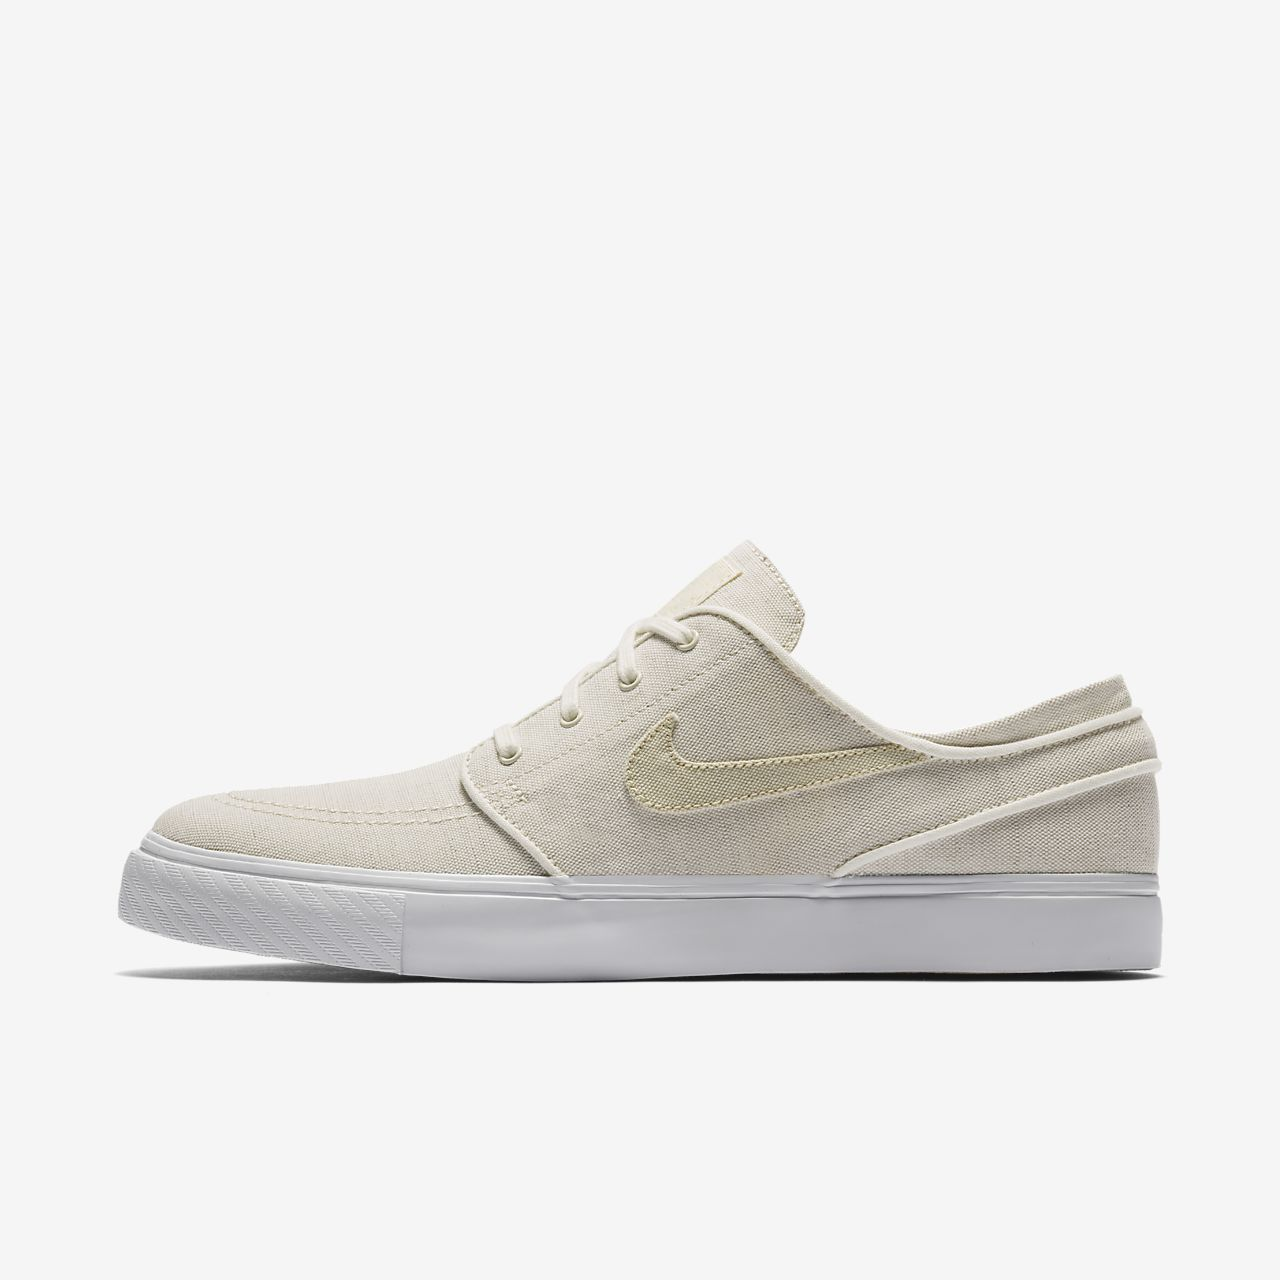 Nike SB Zoom Canvas Stefan Janoski Canvas Zoom Deconstructed Hombre Skateboarding 874690